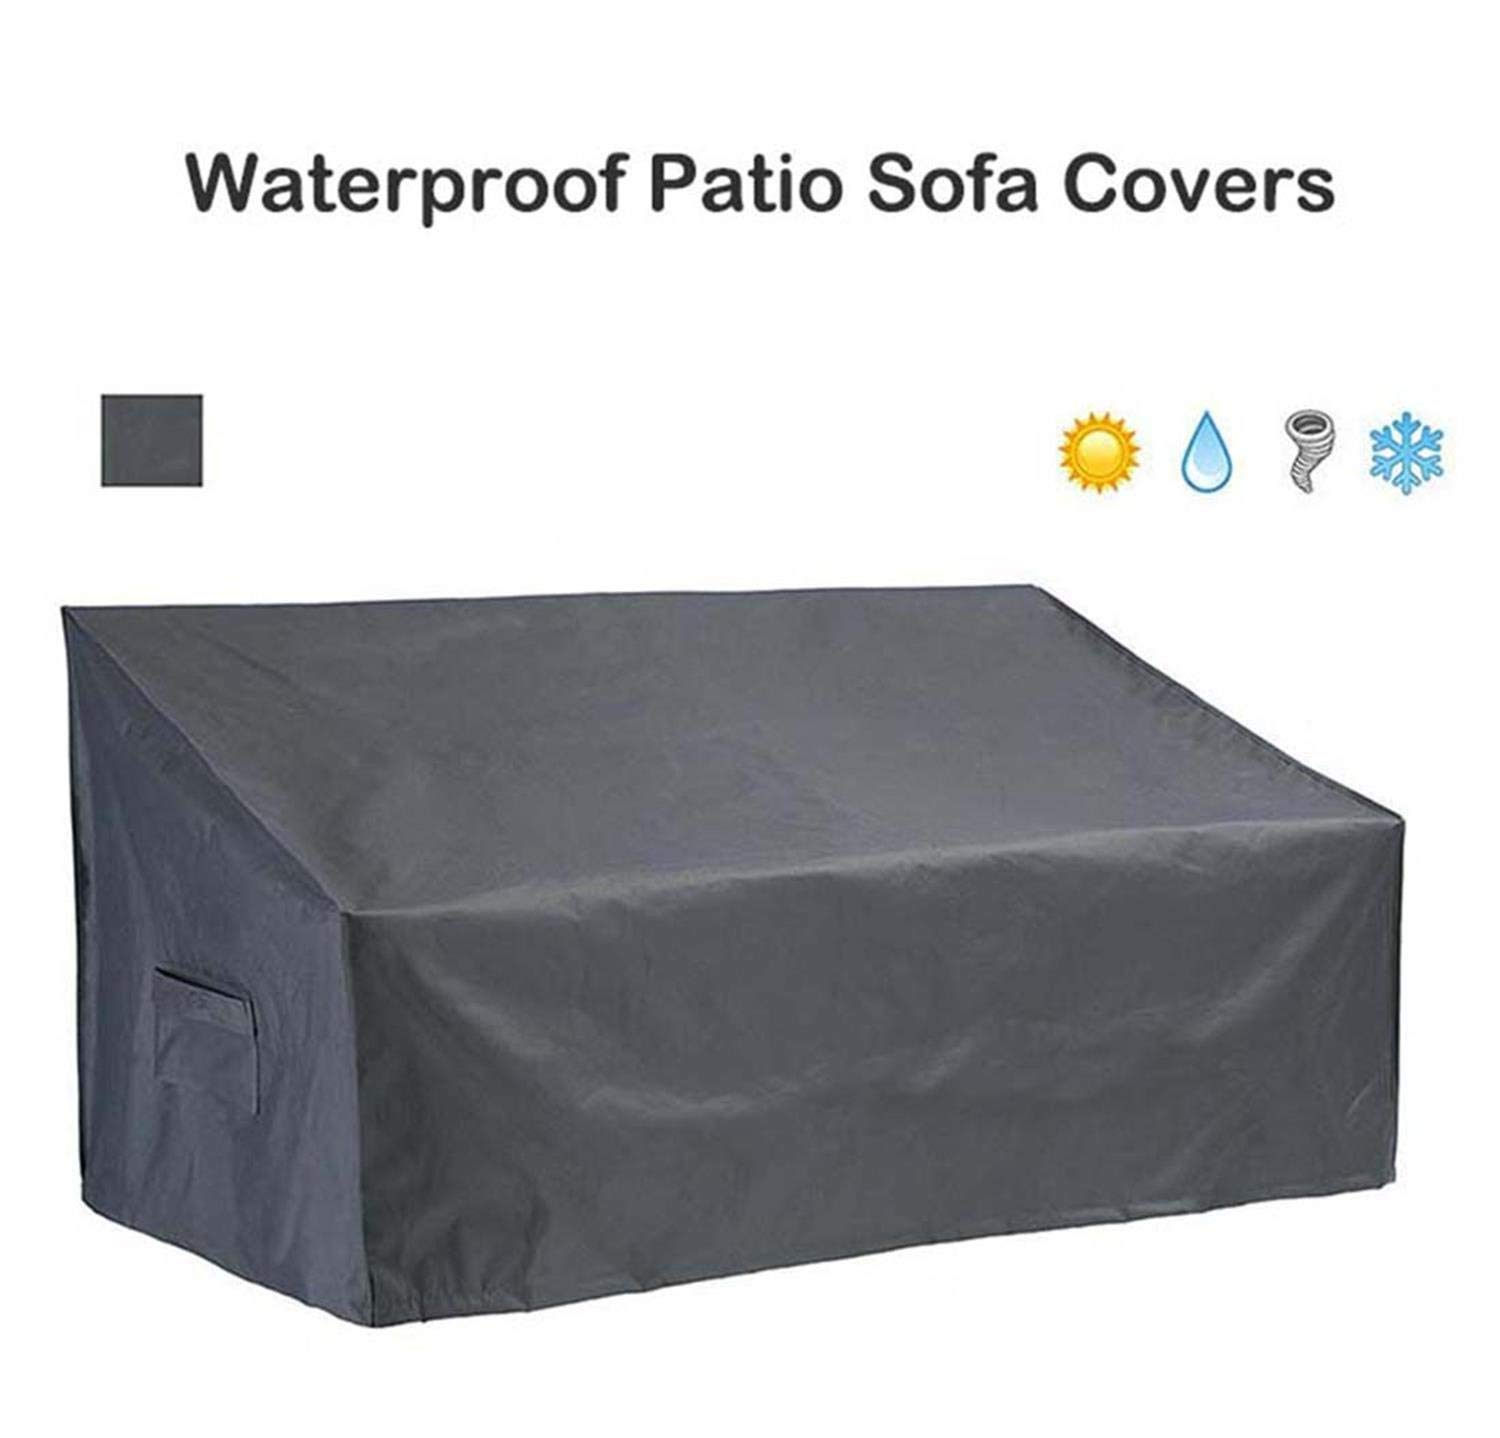 QueenA Premium Deep Seated Patio Sofa Cover, Heavy Duty Outdoor Furniture Cover with Durable and Water Resistant Fabric,Large Grey